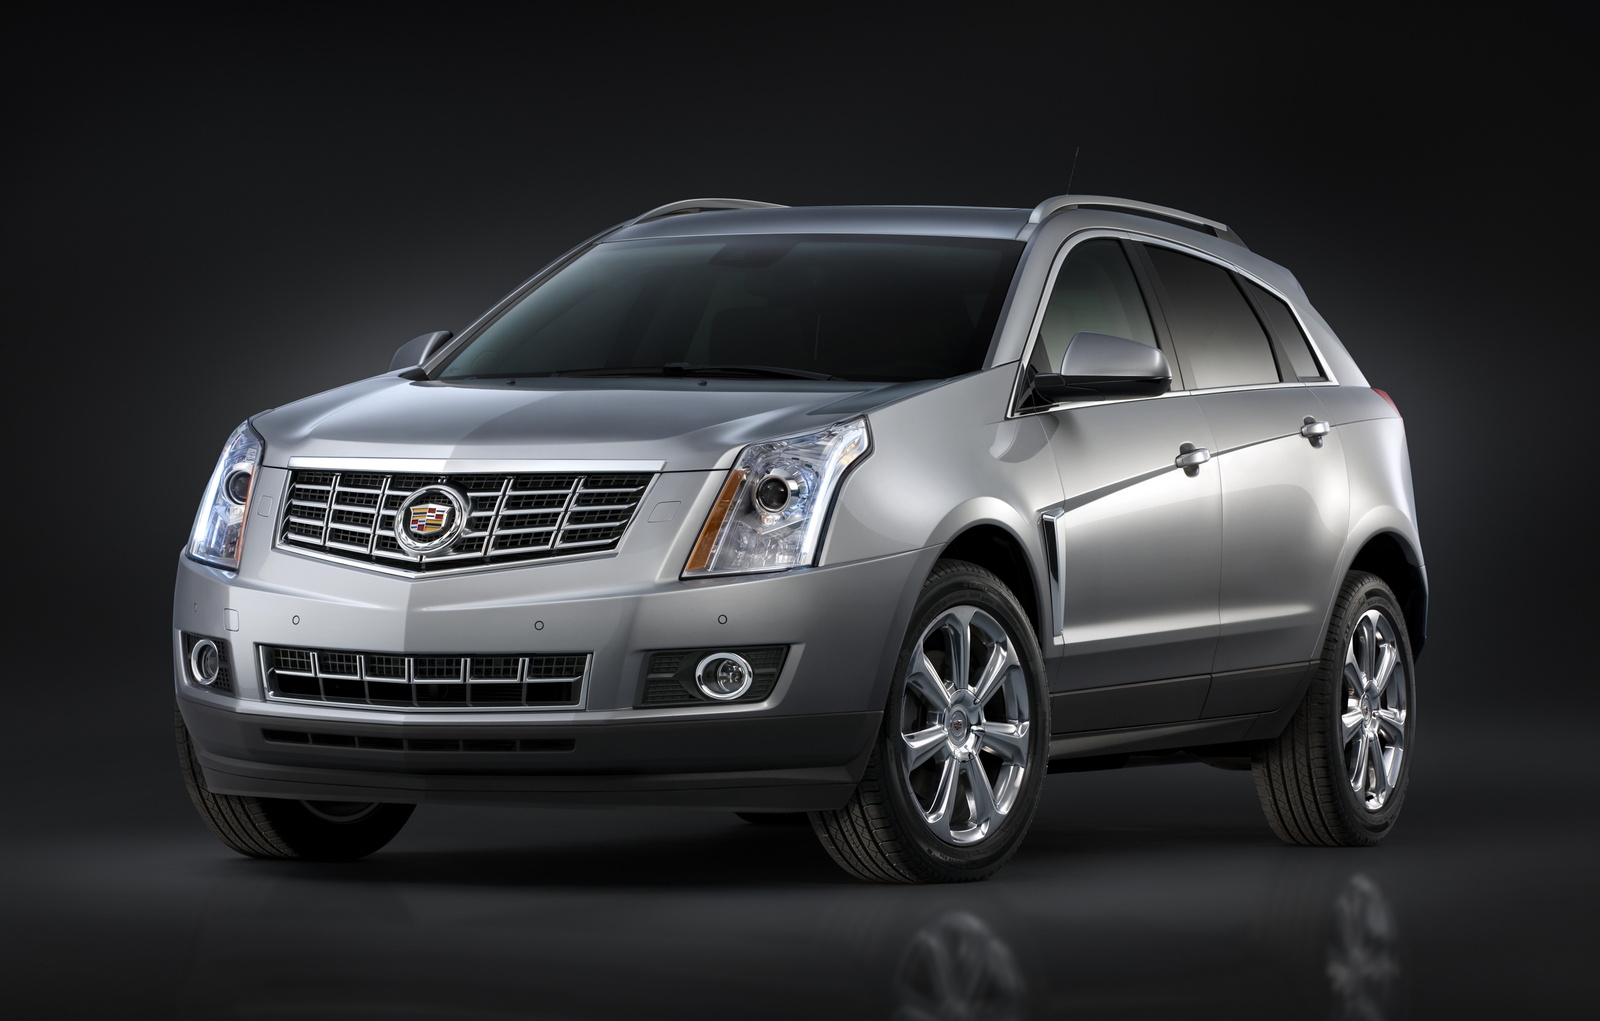 drive suv features srx cadillac price base photos reviews front wheel interior